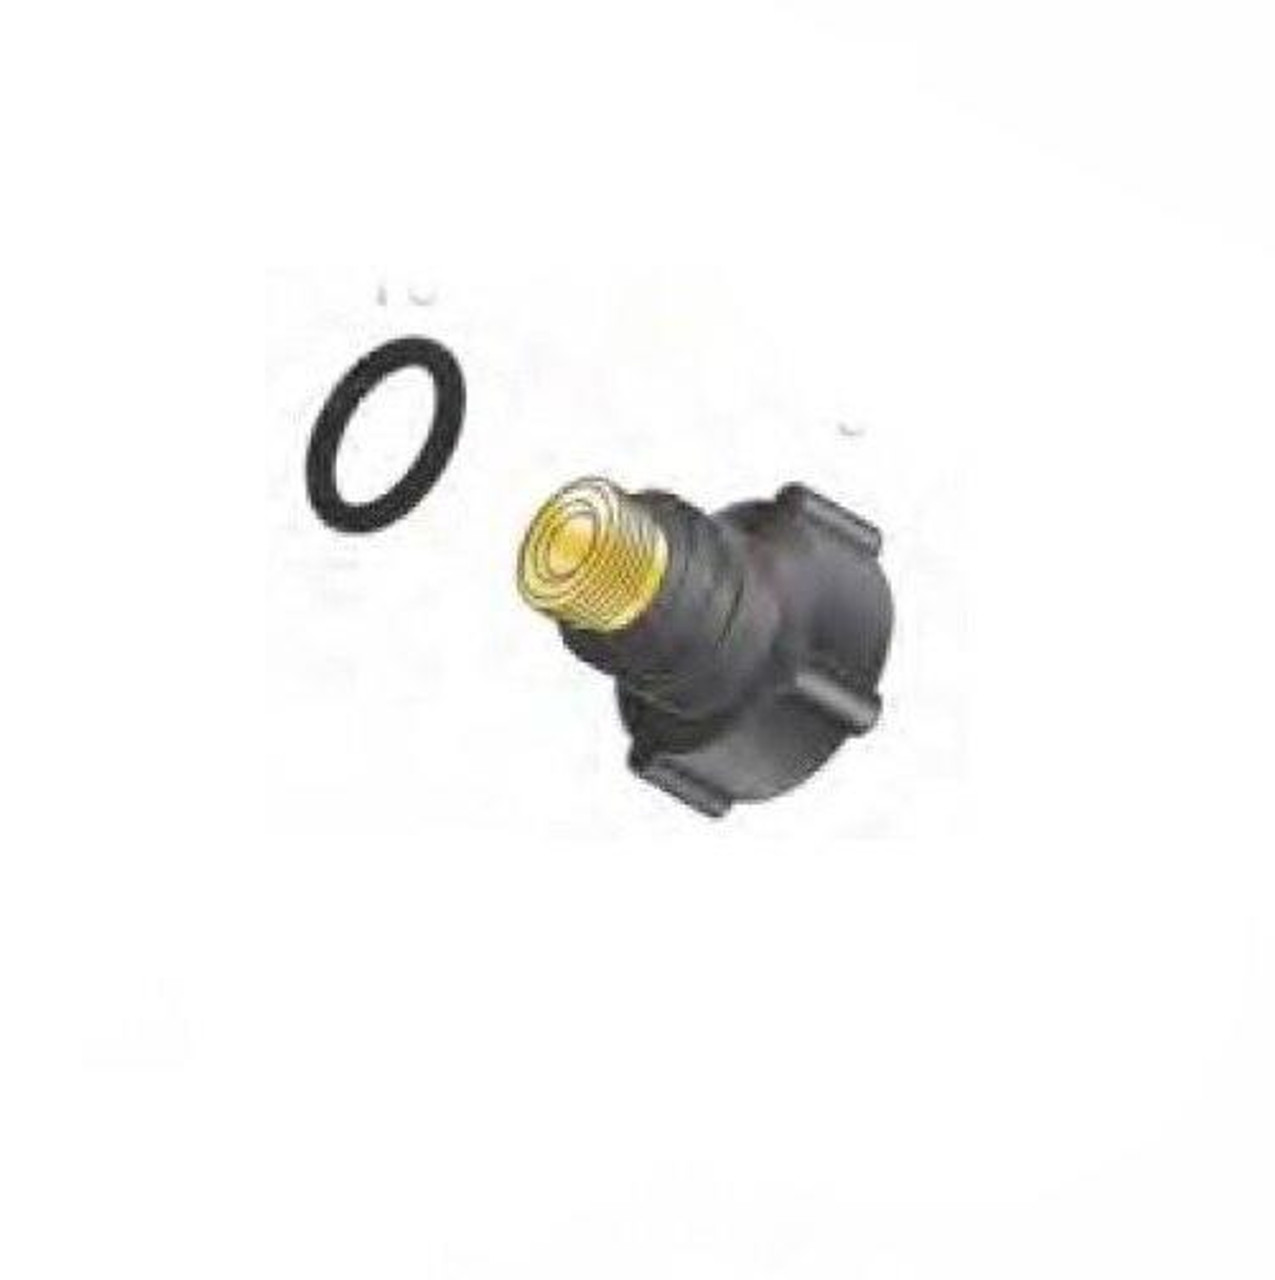 Profax 57Y04 Short Back Cap with O-Ring for 17-18-26 Series TIG Torches - 5 Pack